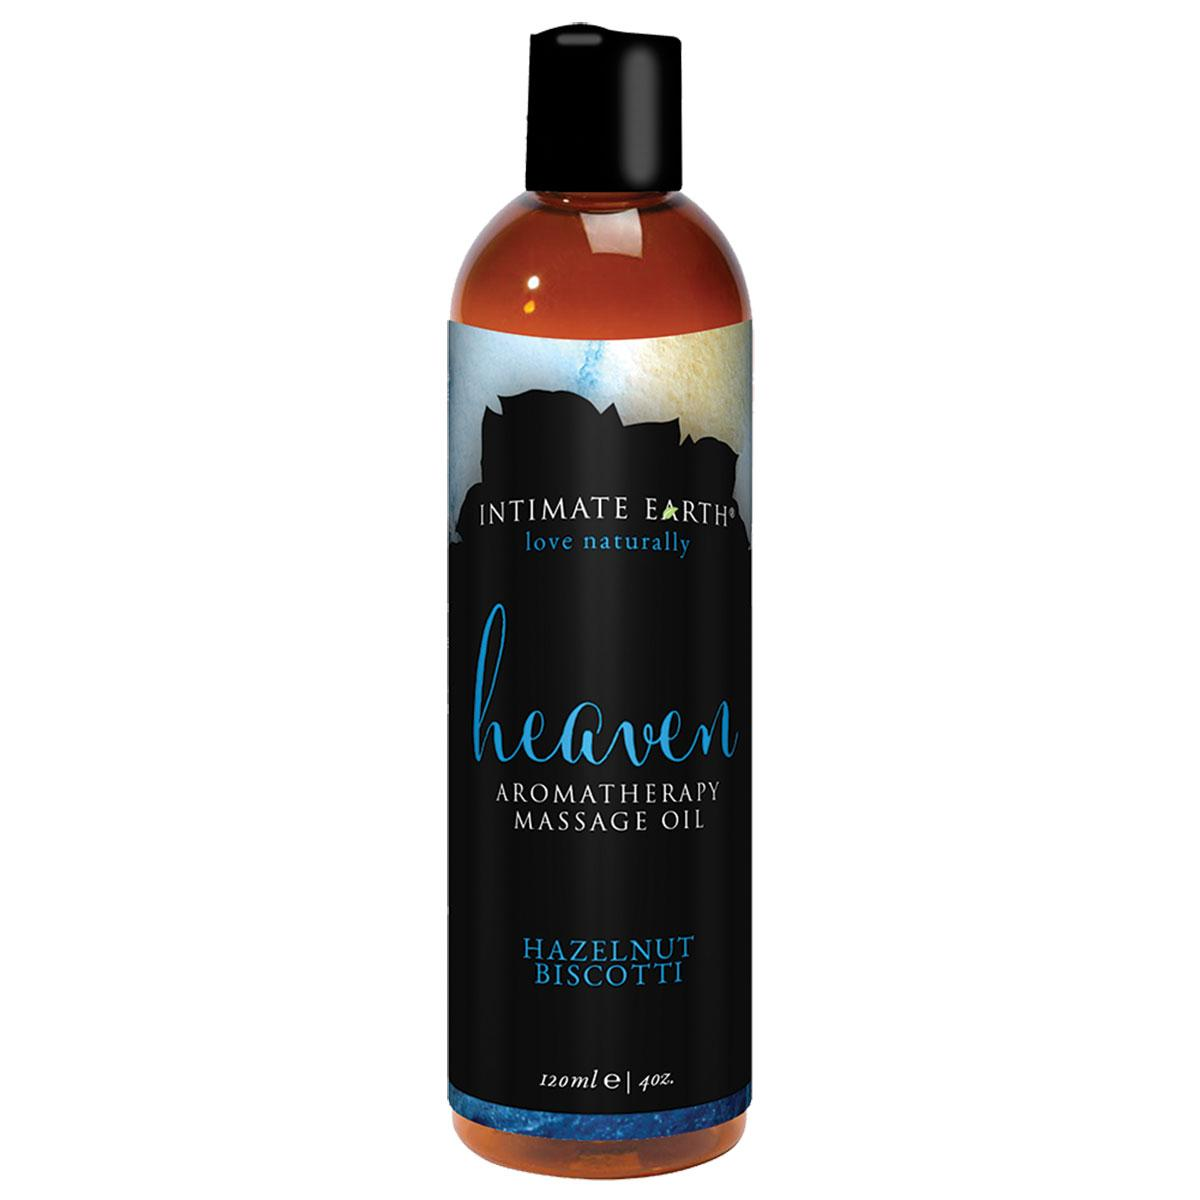 Intimate Earth Massage Oil - Heaven 4oz